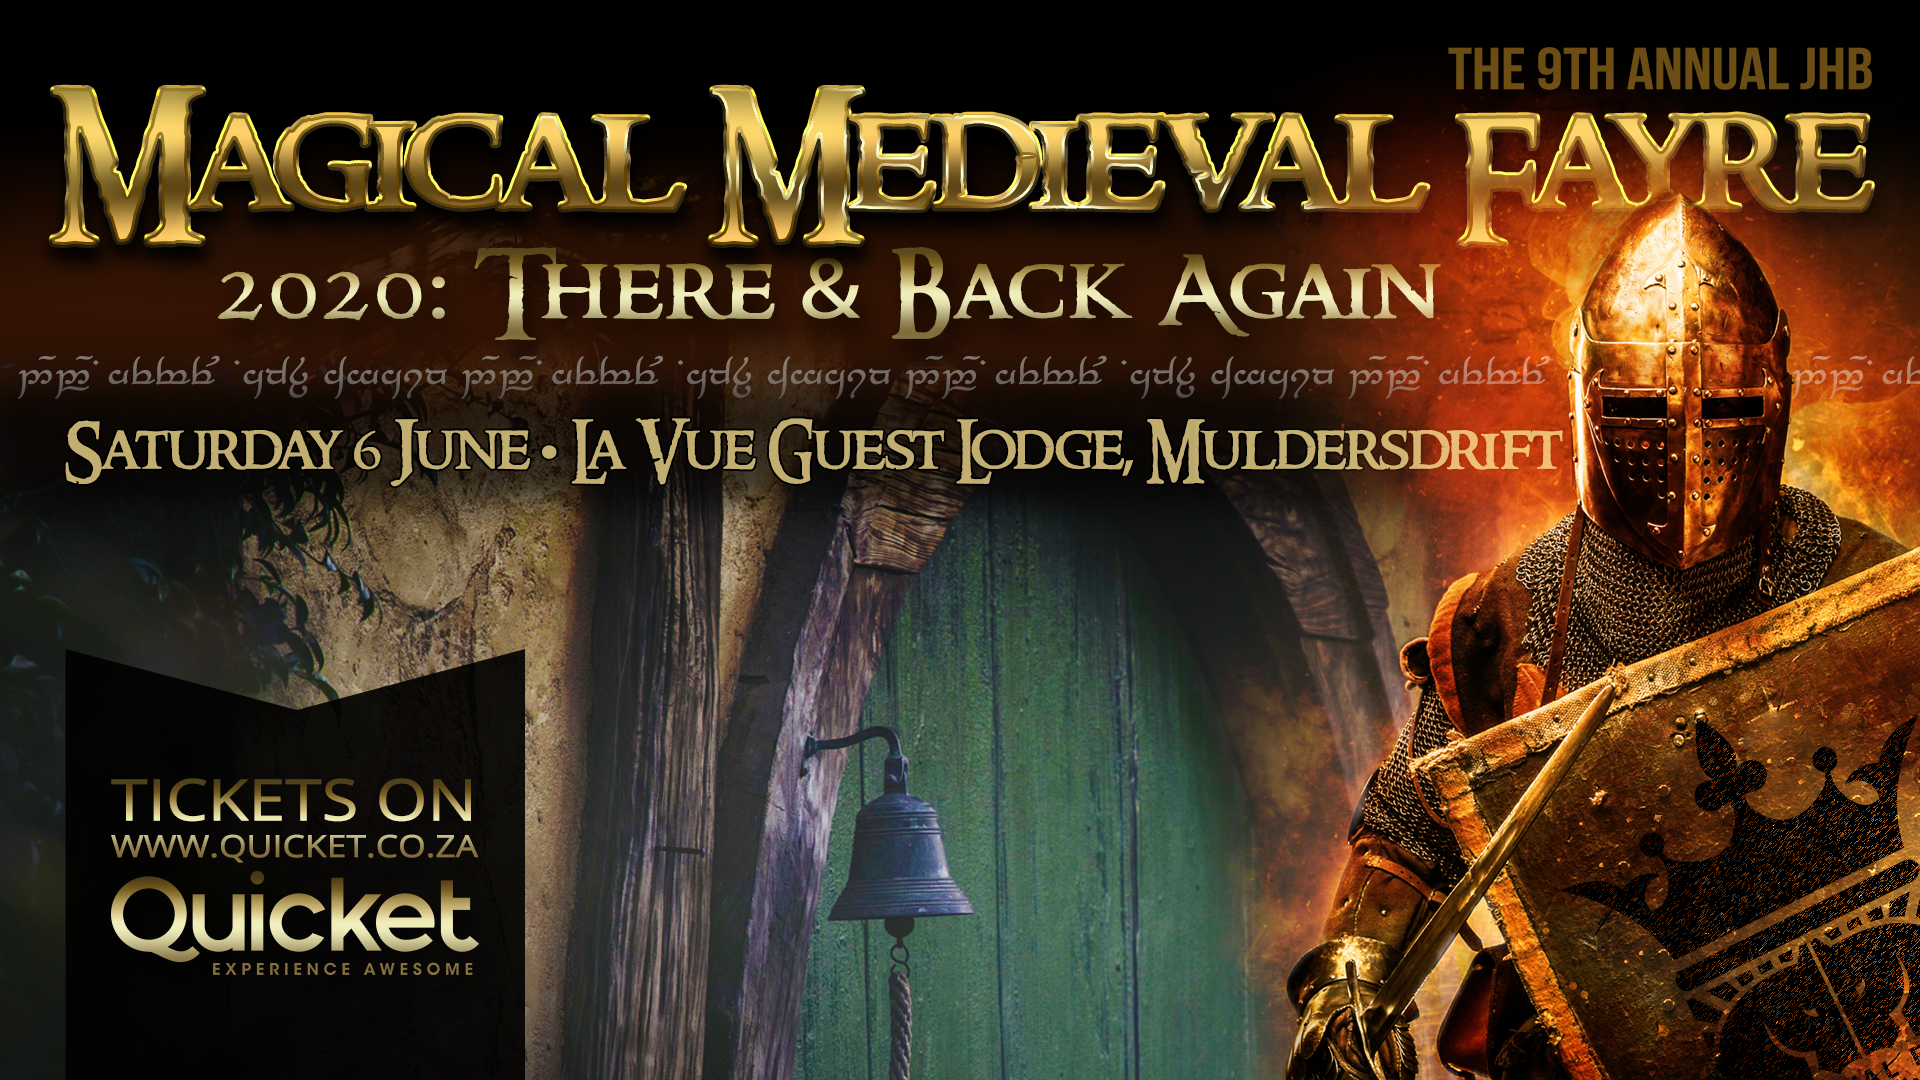 Announcing – Medieval Fayre 2020: There & Back Again